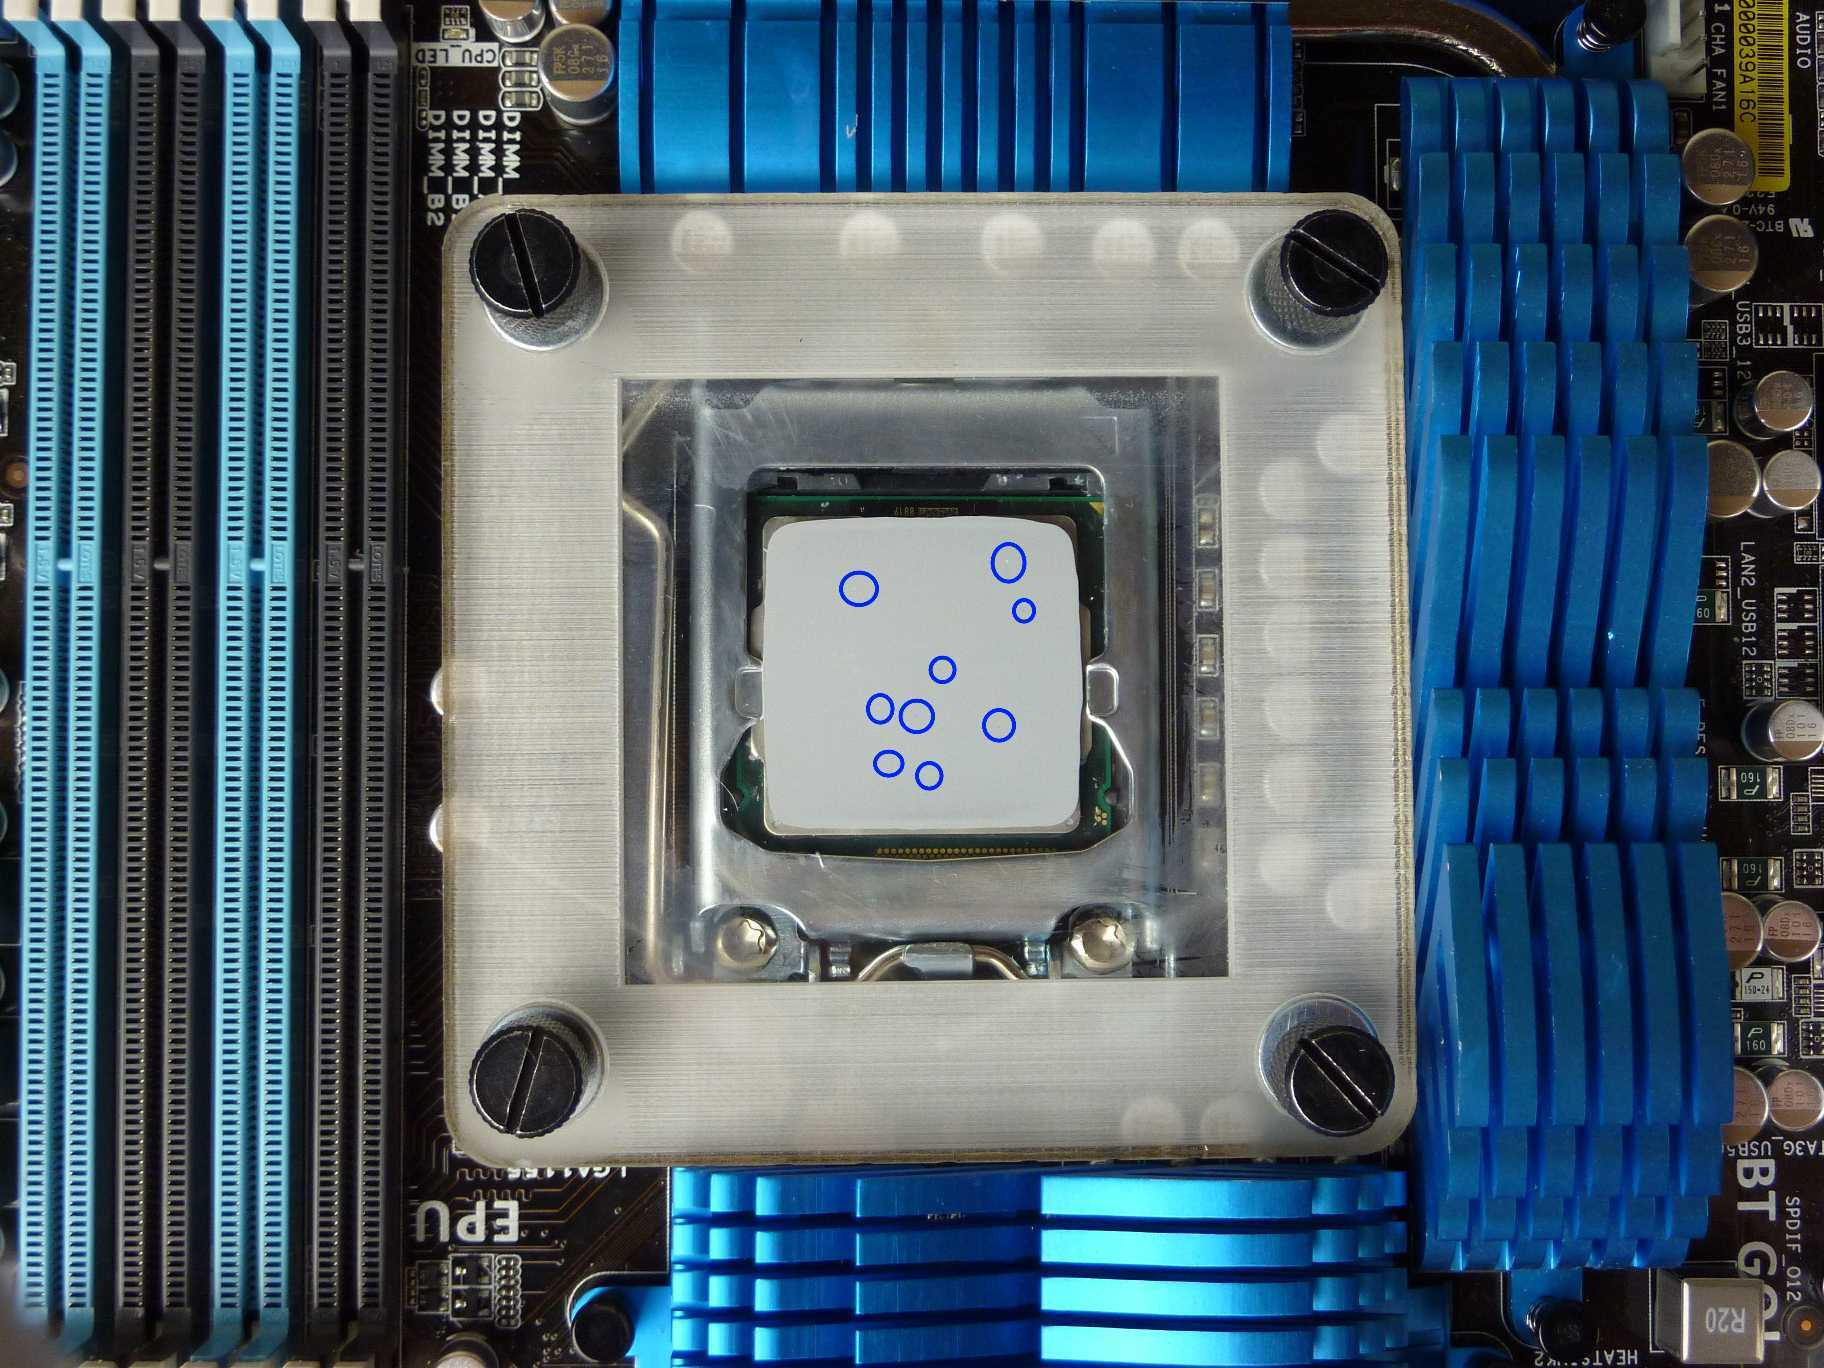 Thermal Paste Spread - Smooth spread